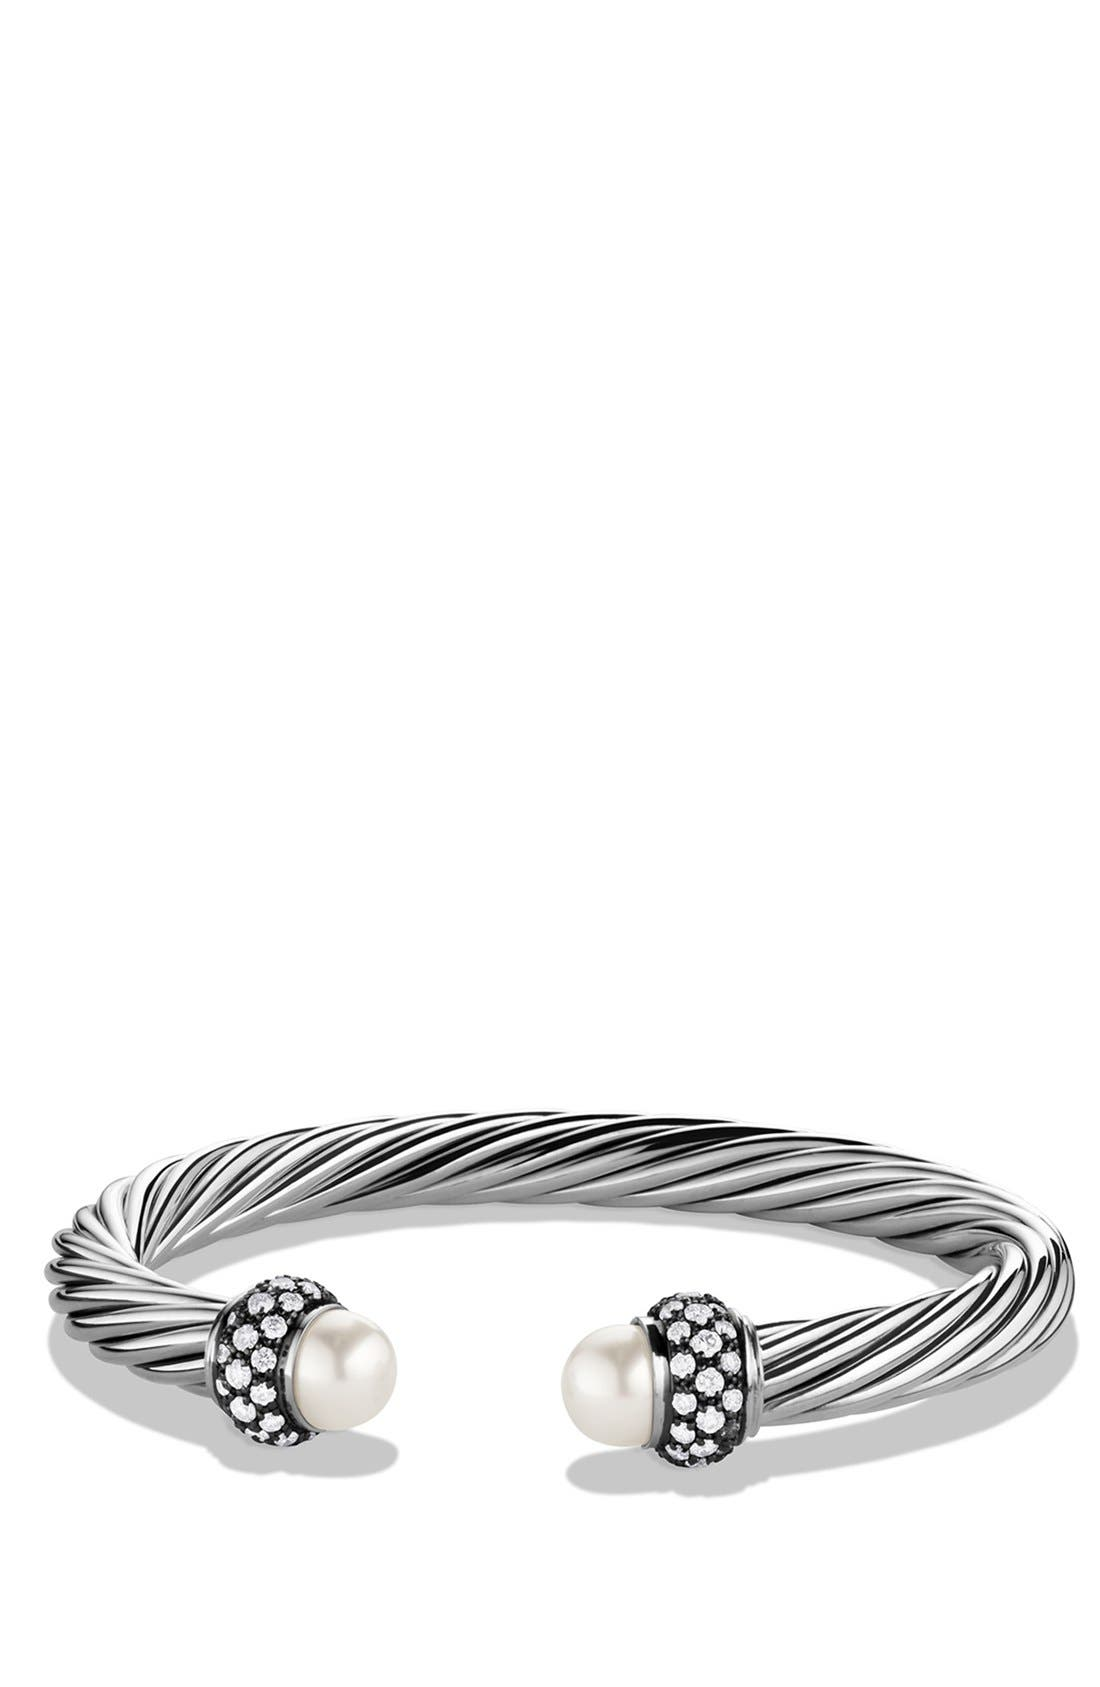 Alternate Image 1 Selected - David Yurman 'Cable Classics' Bracelet with Pearls and Diamonds